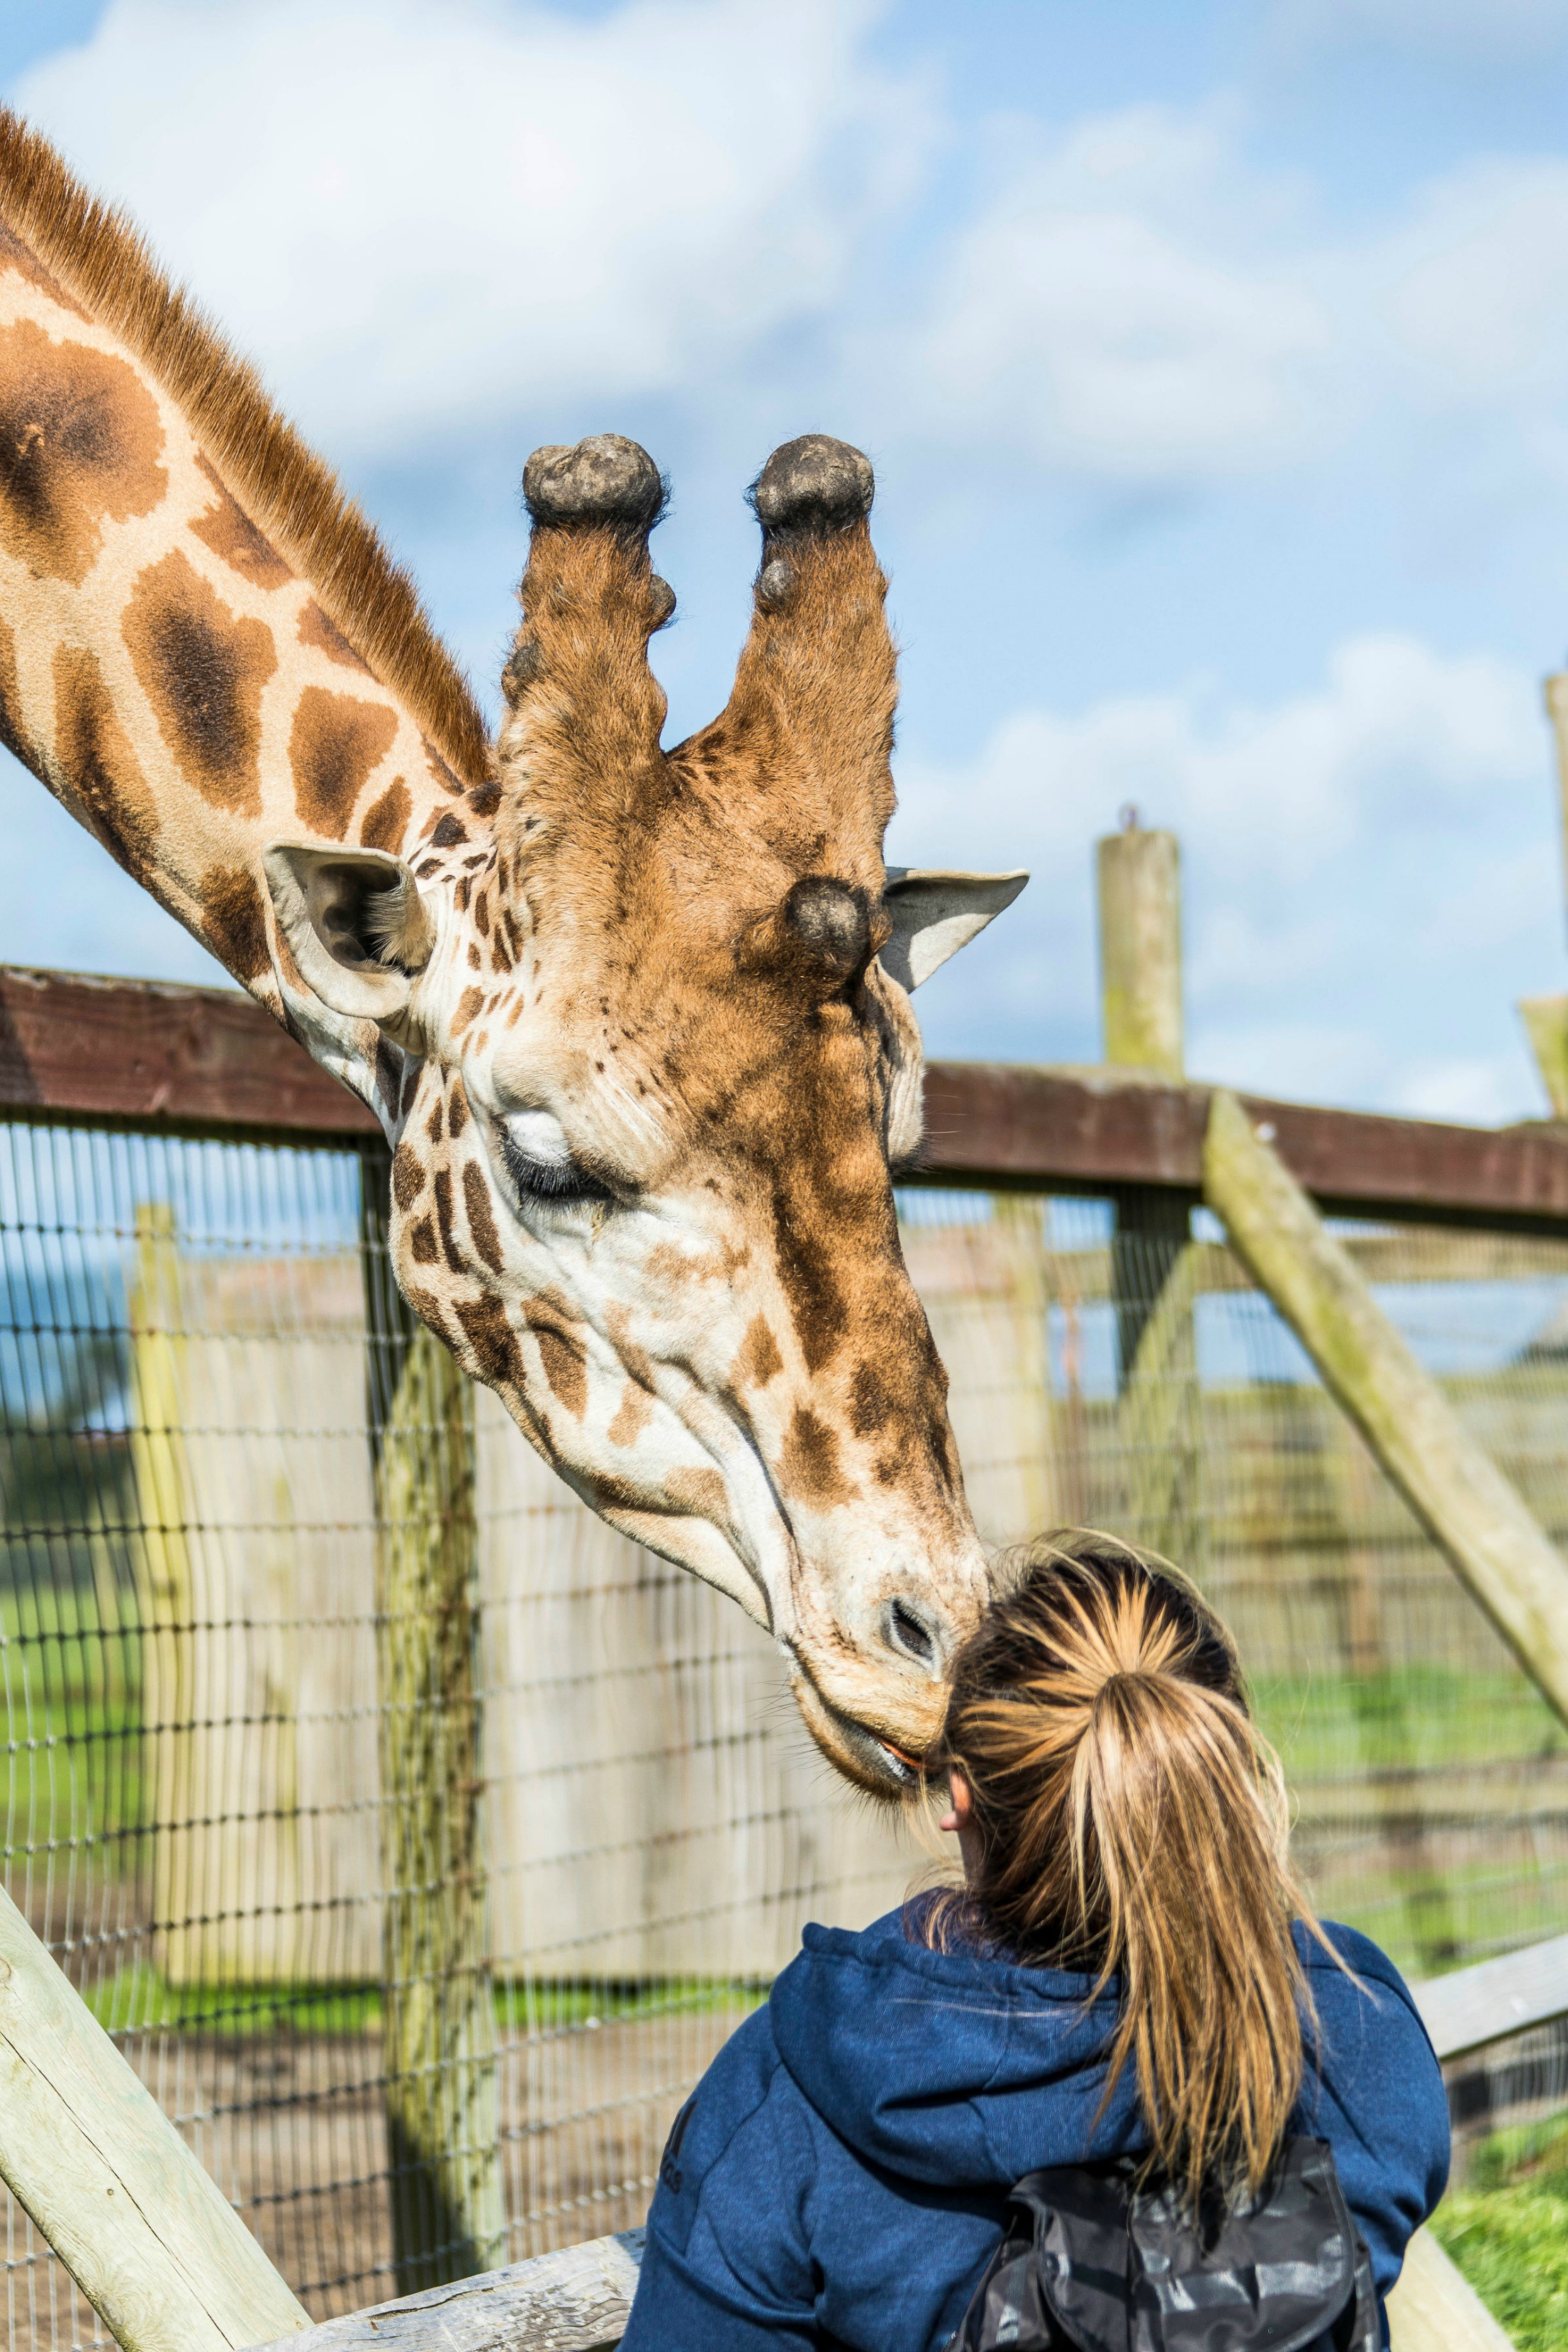 Feed giraffes at the B Ryan Preserve along the Mendocino coast.